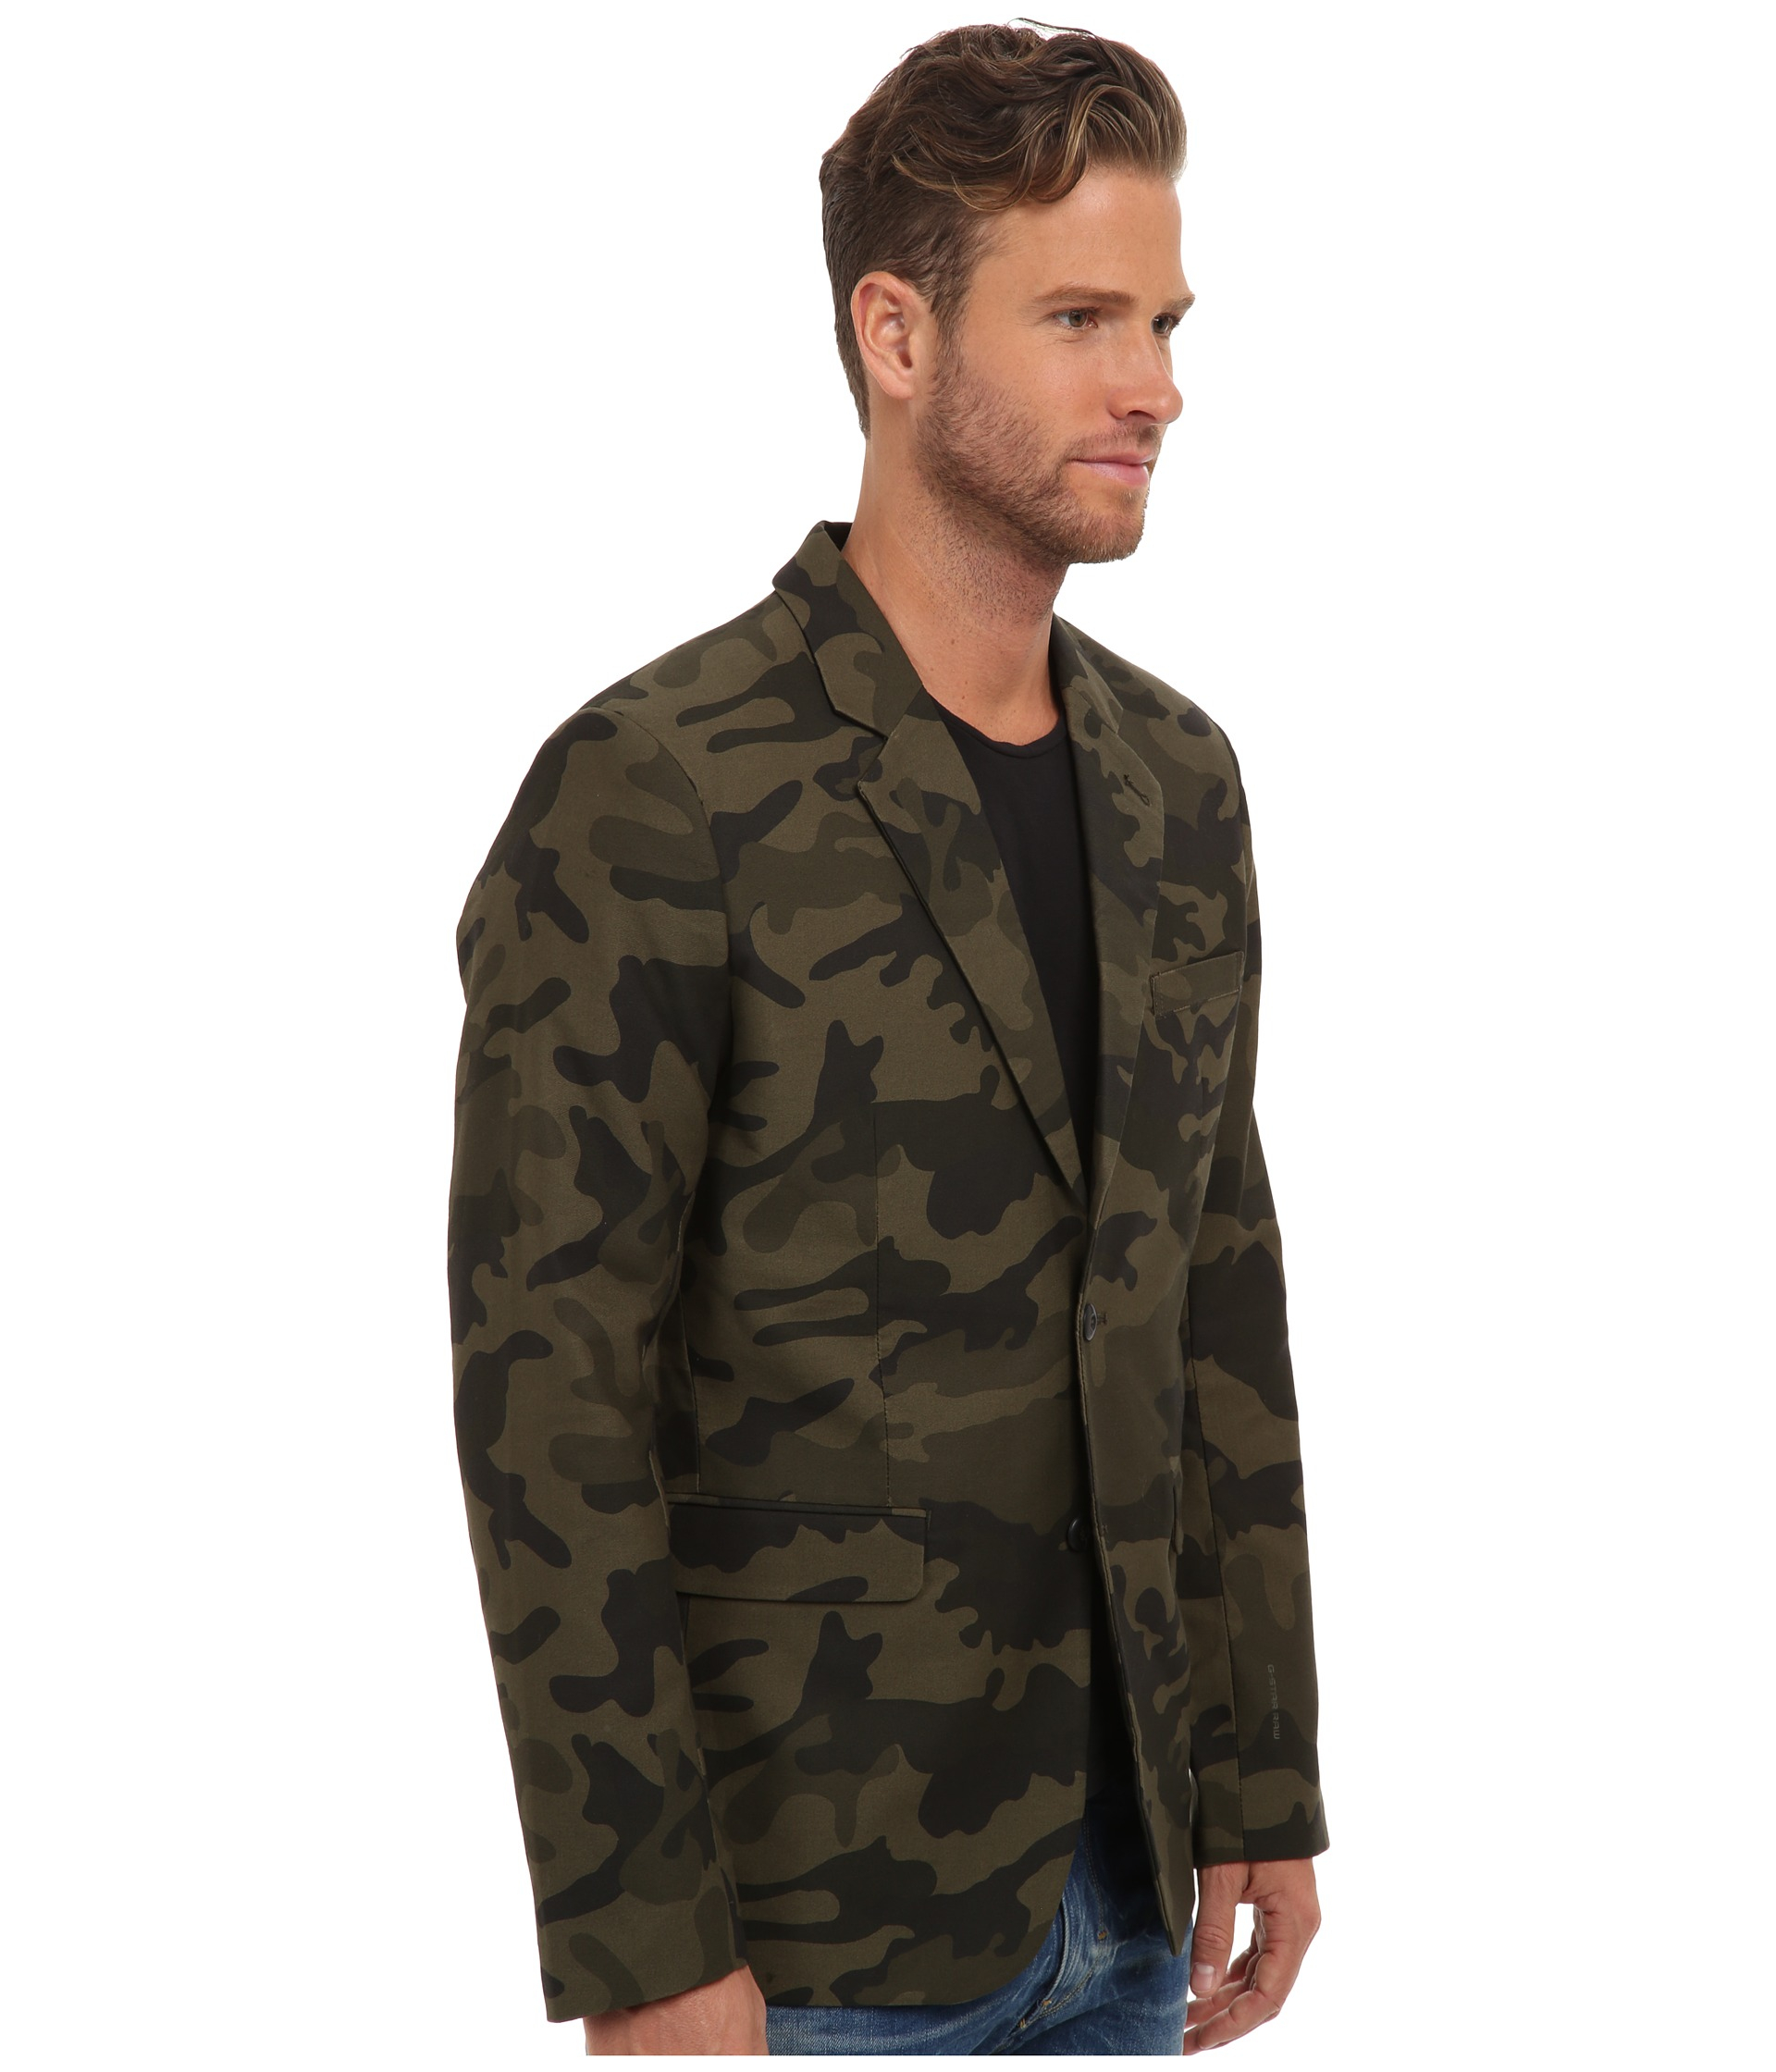 2fcd43400f95d G-Star RAW Omega Camo Blazer in Green for Men - Lyst